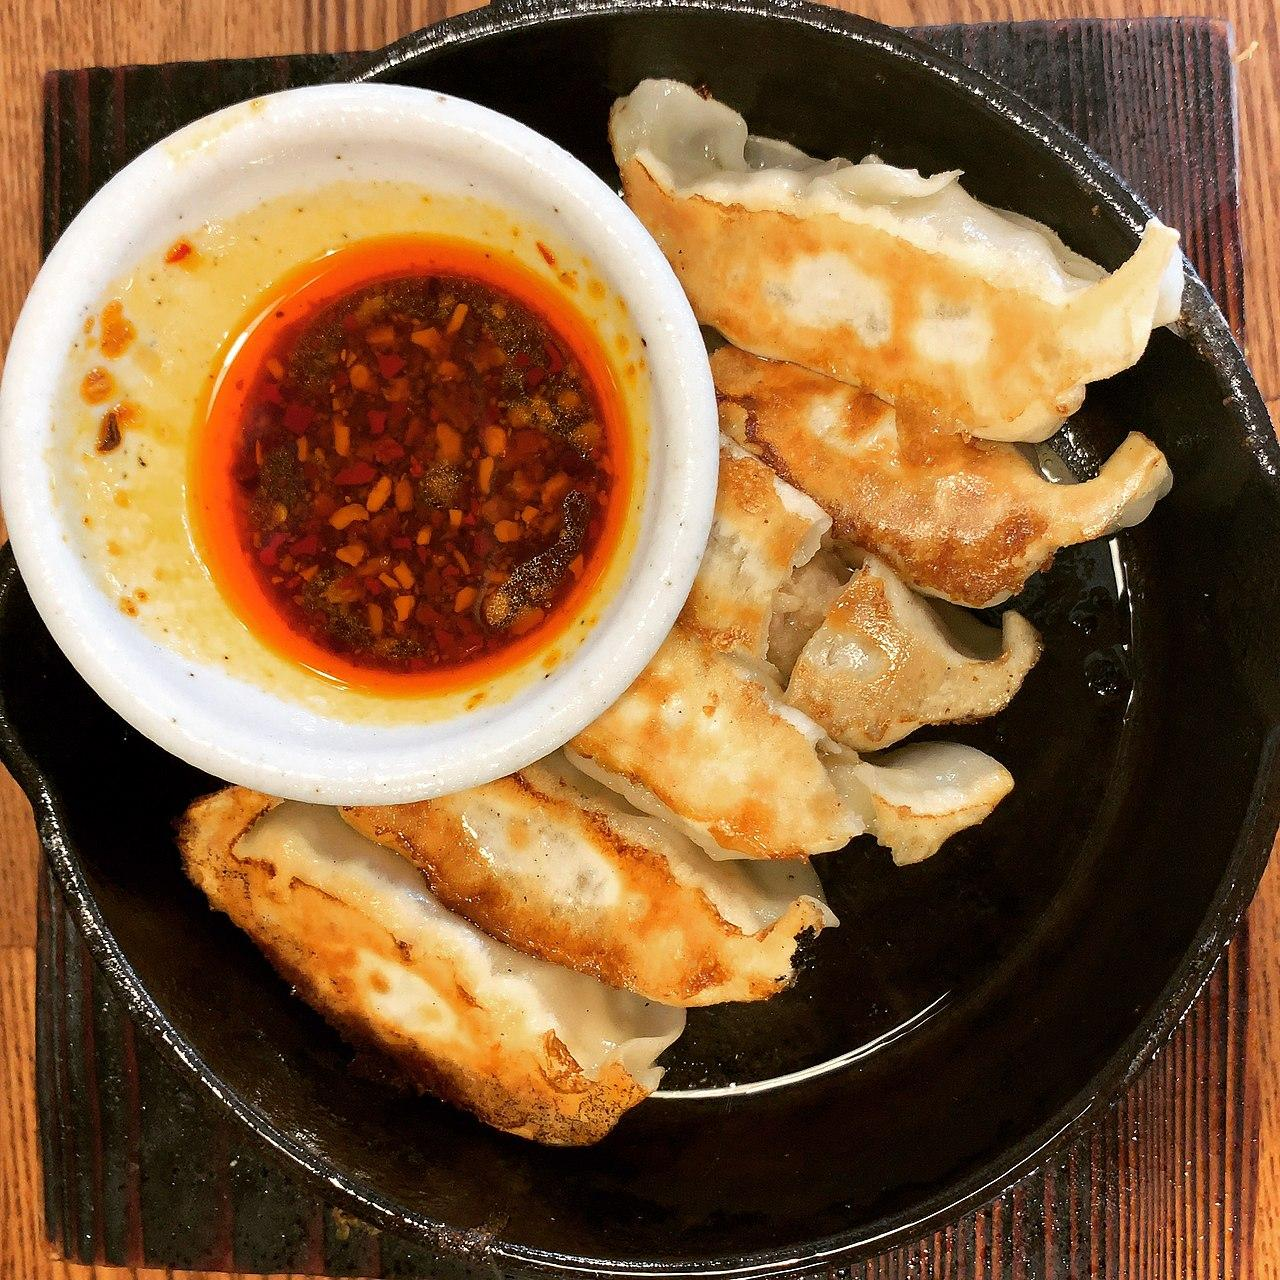 Potstickers with chili oil. (Image: Nakashi via Flickr CC BY-SA 2.0)